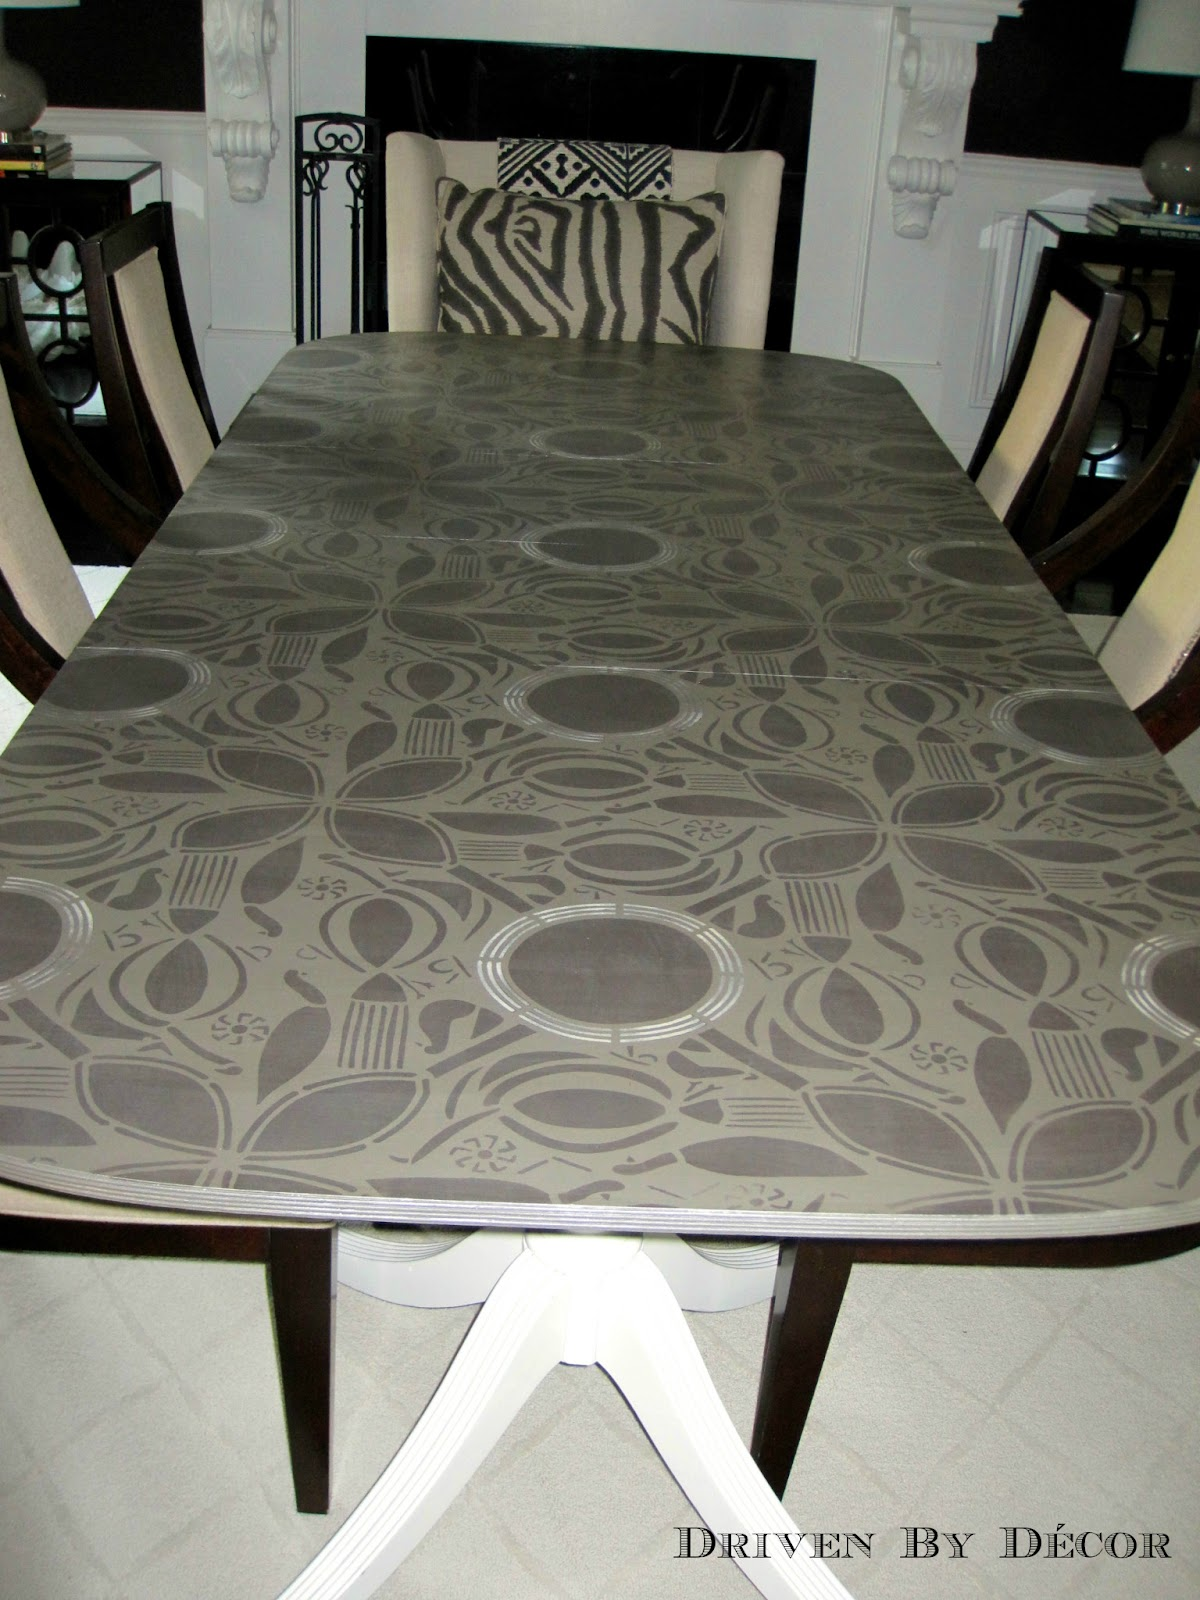 Stunning stenciled table driven by decor for Stenciled dining room table